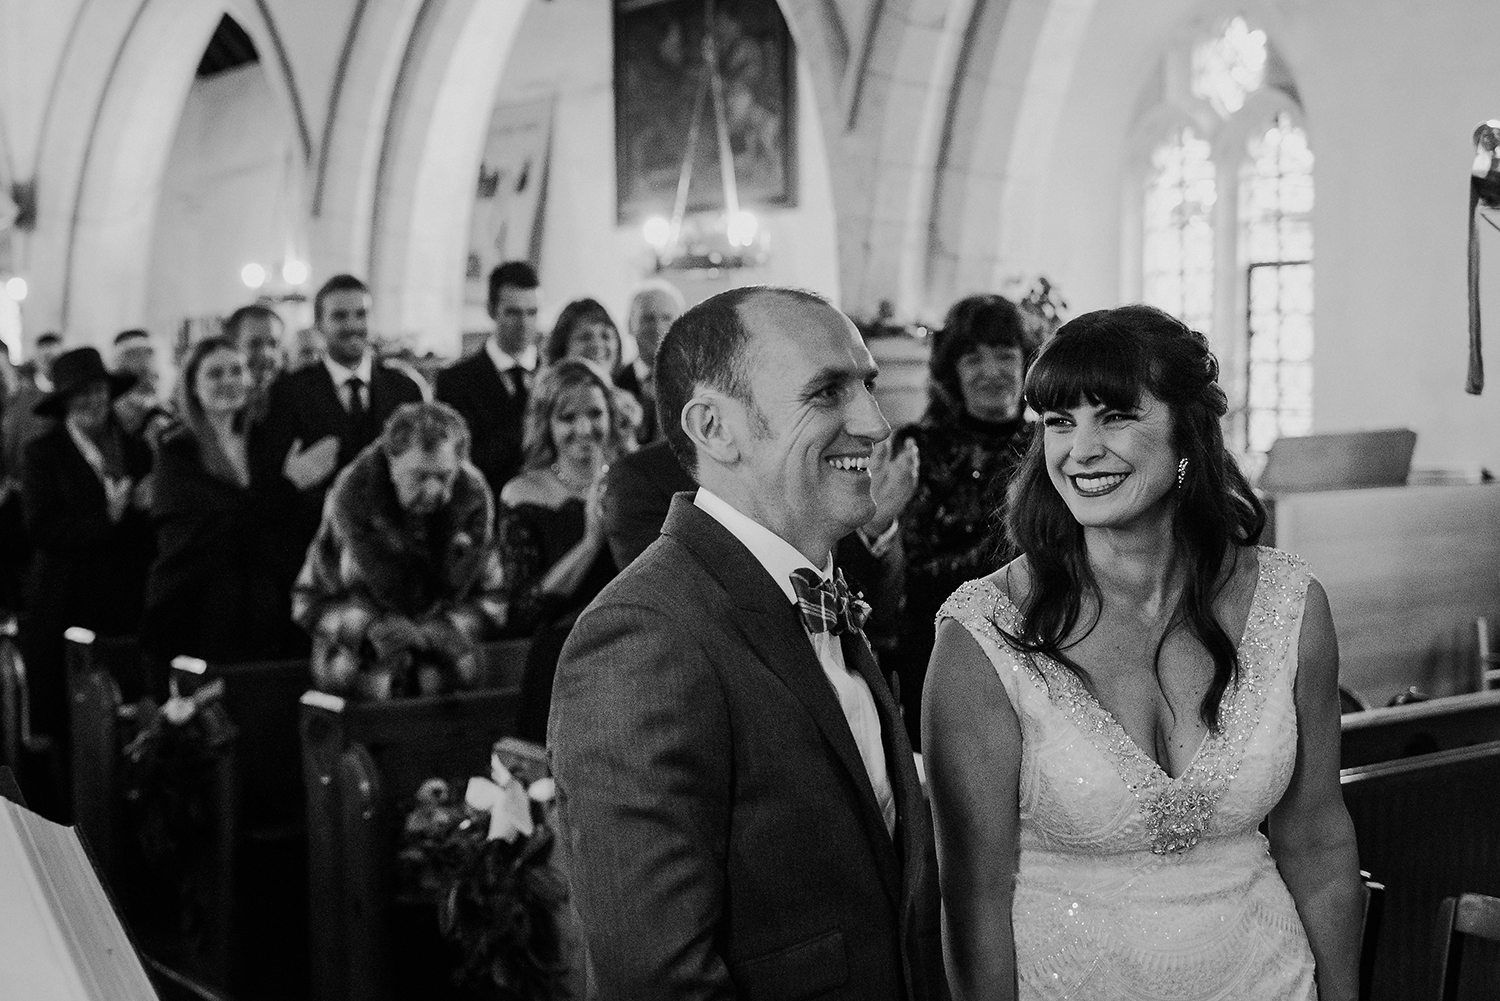 BW photo, bride and groom announced man and wife